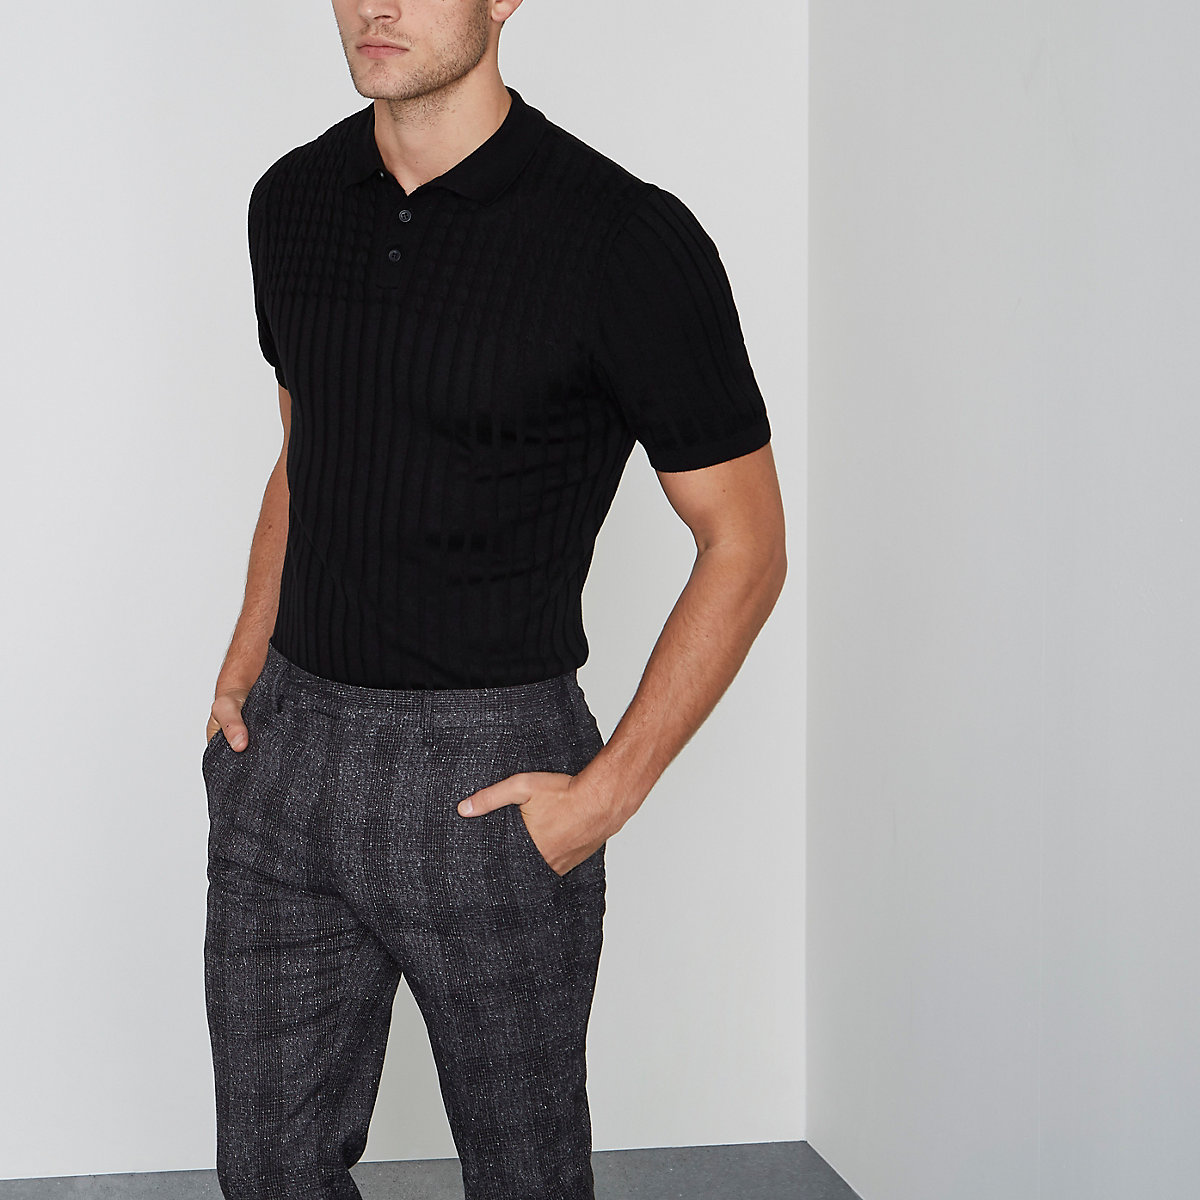 Black cable knit muscle fit polo shirt